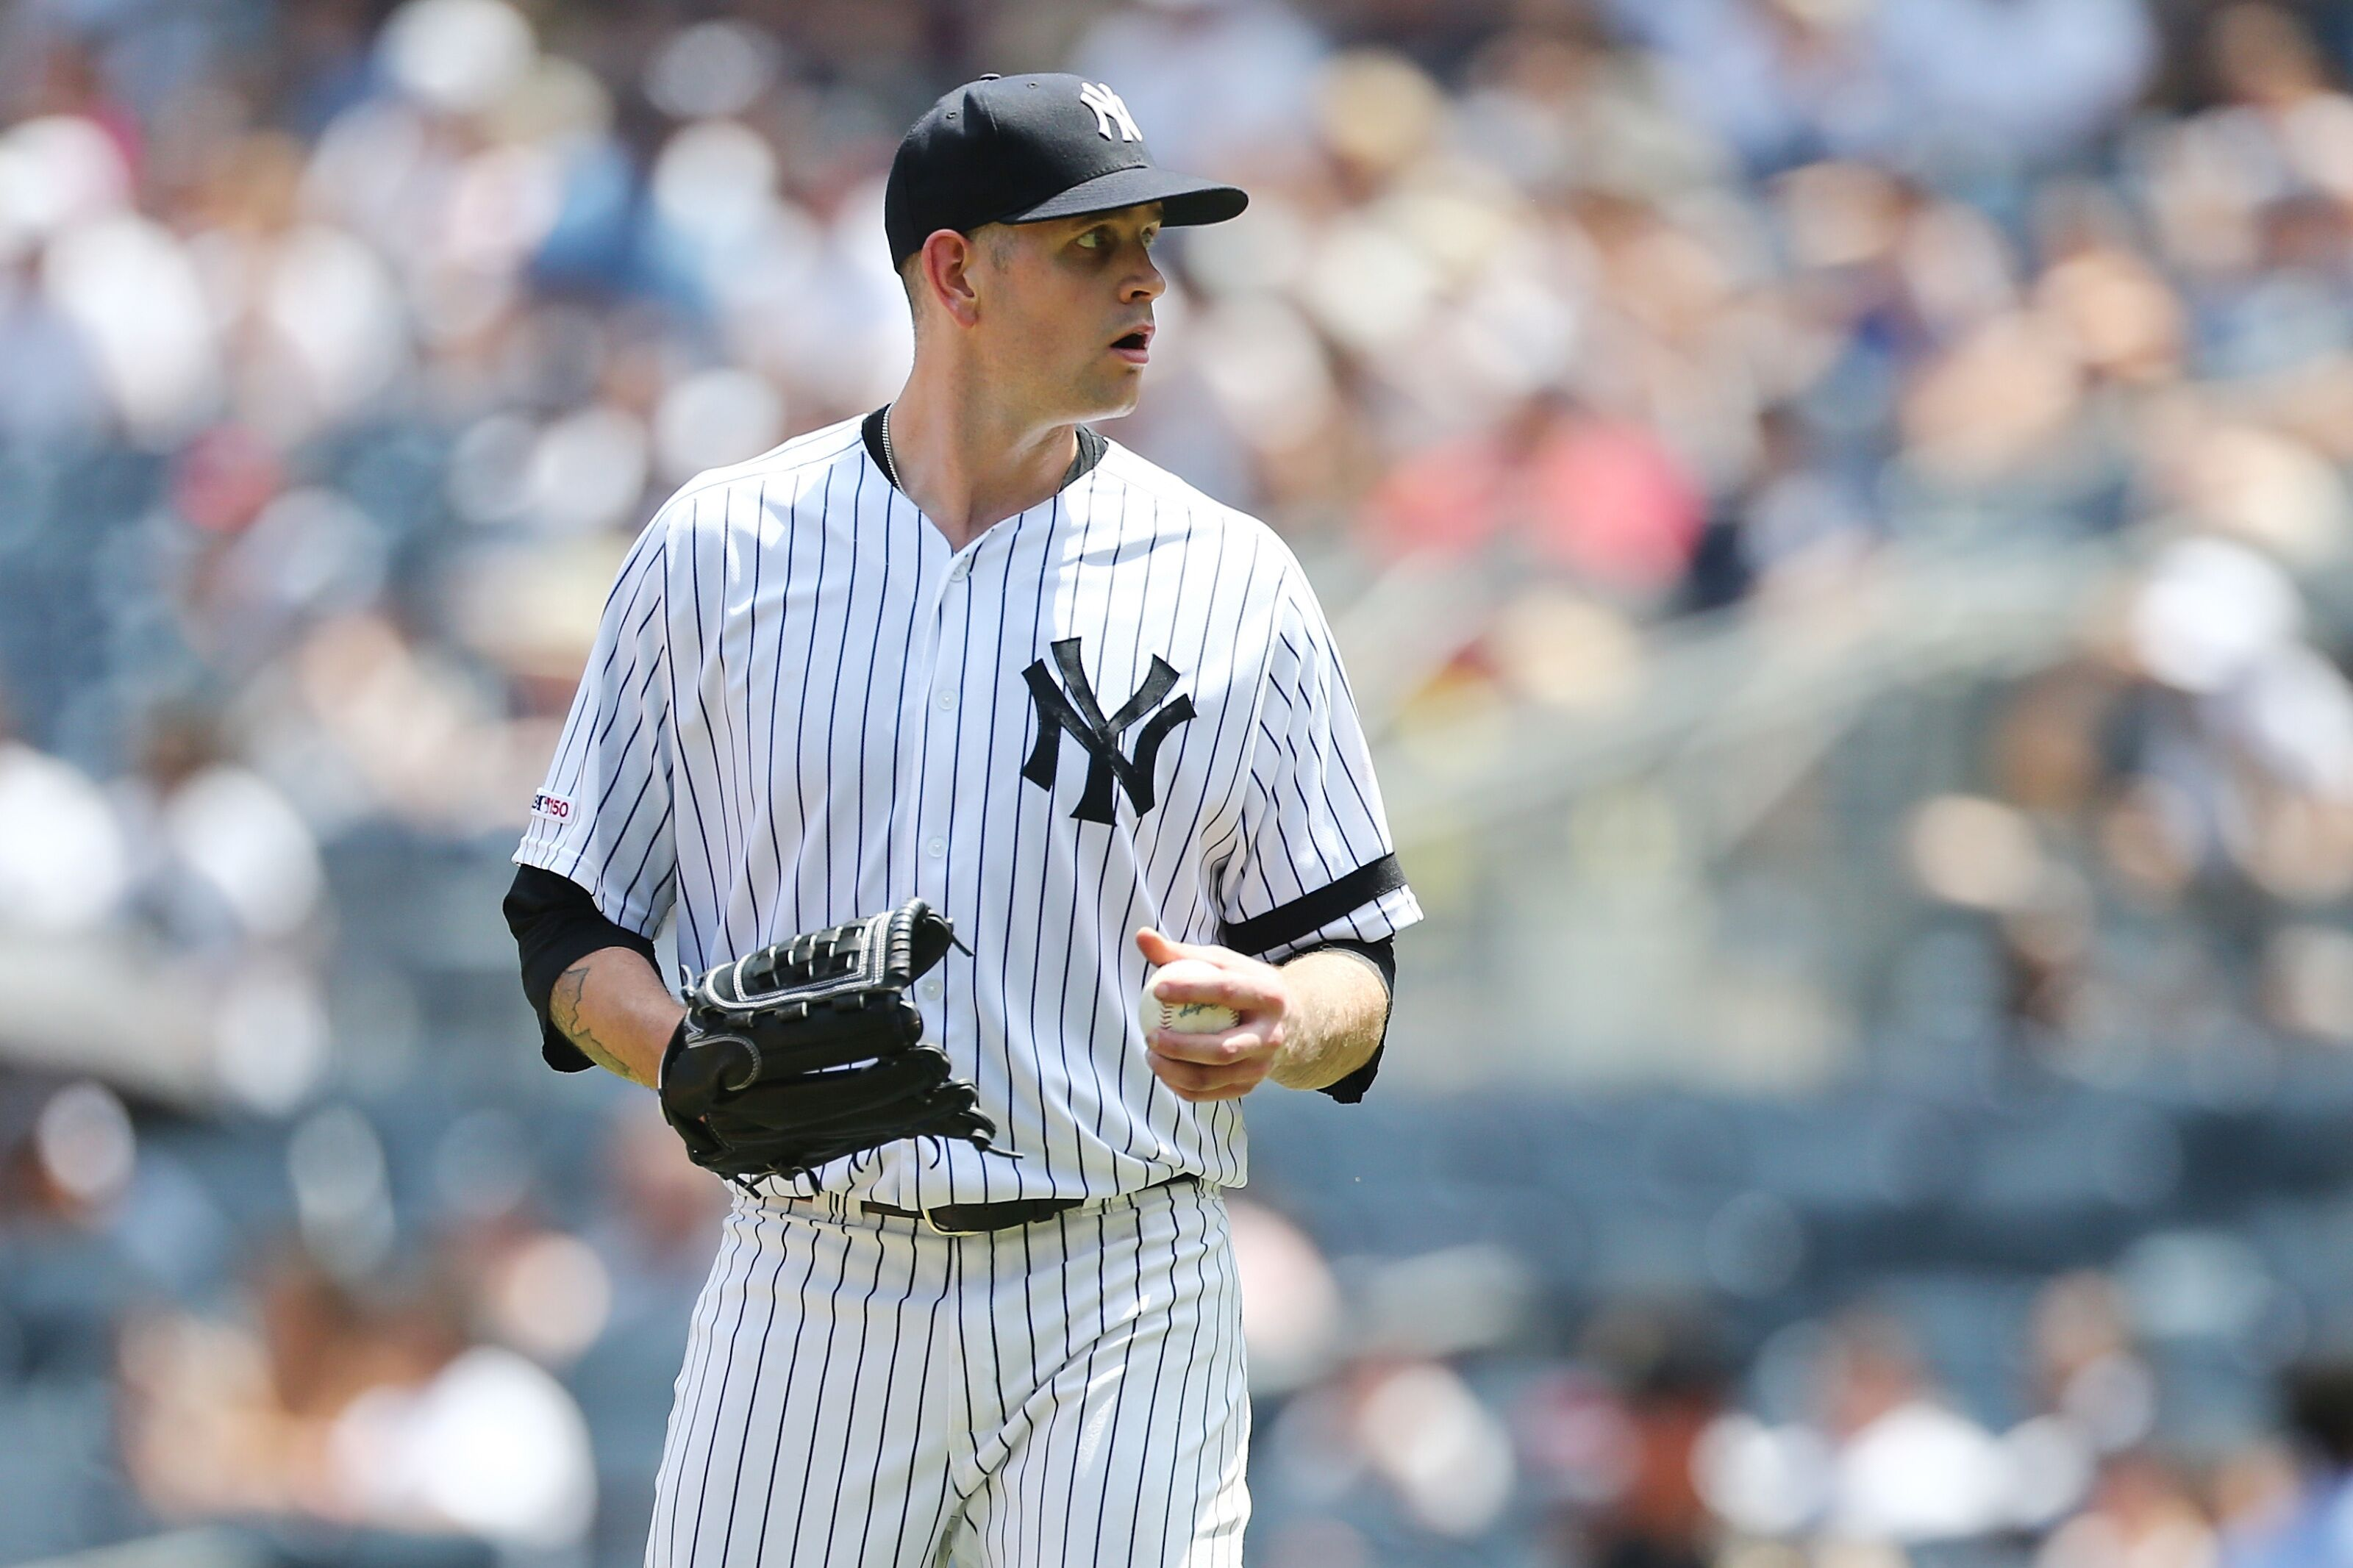 Yankees: Preview Tuesday's contest against the Rangers